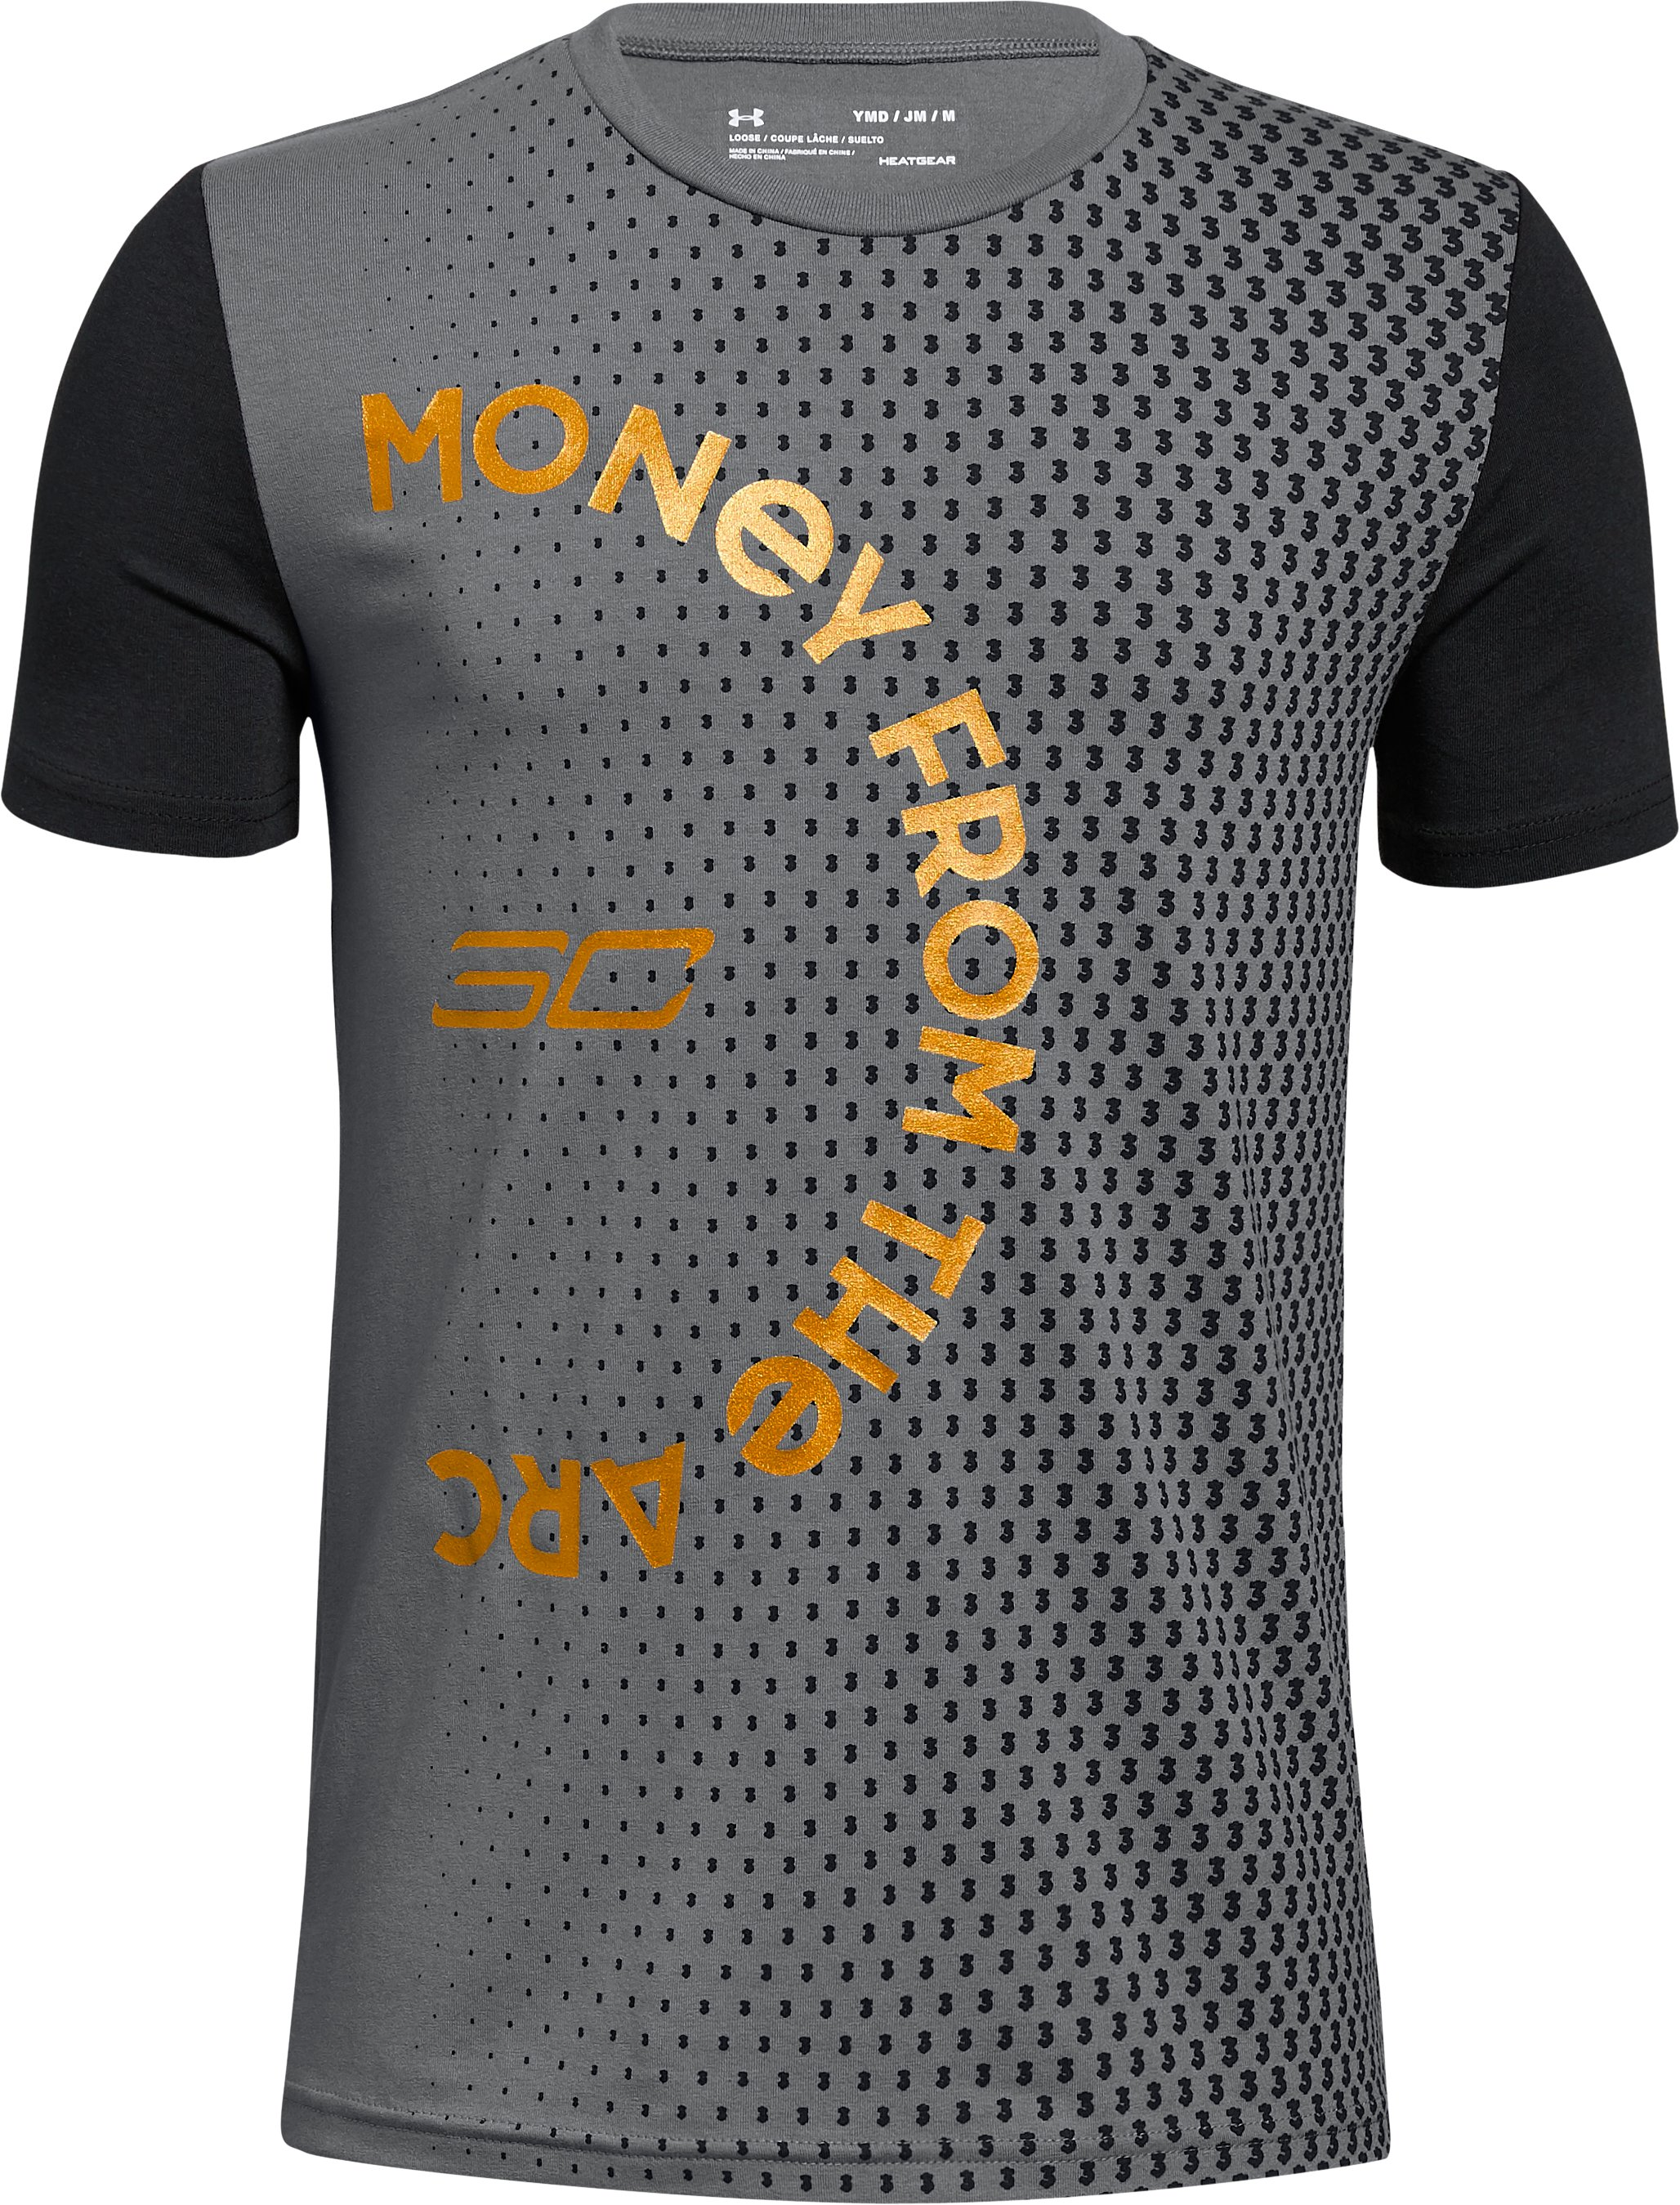 Boys' SC30 Money From The Arc Short Sleeve T-Shirt, Graphite